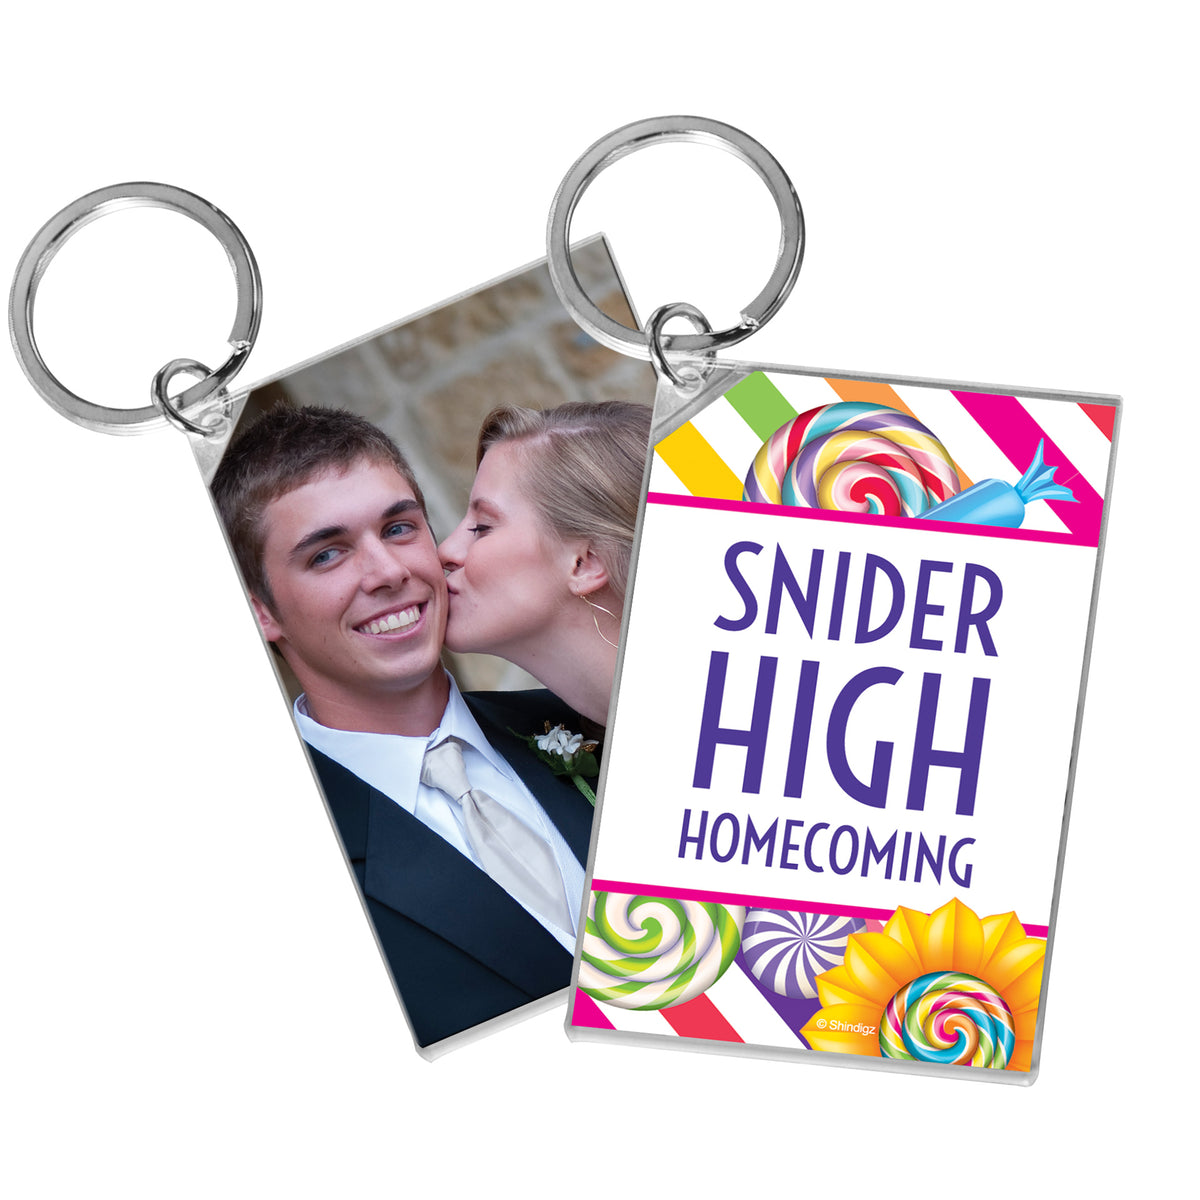 Sugar Rush Personalized Acrylic Key Chain